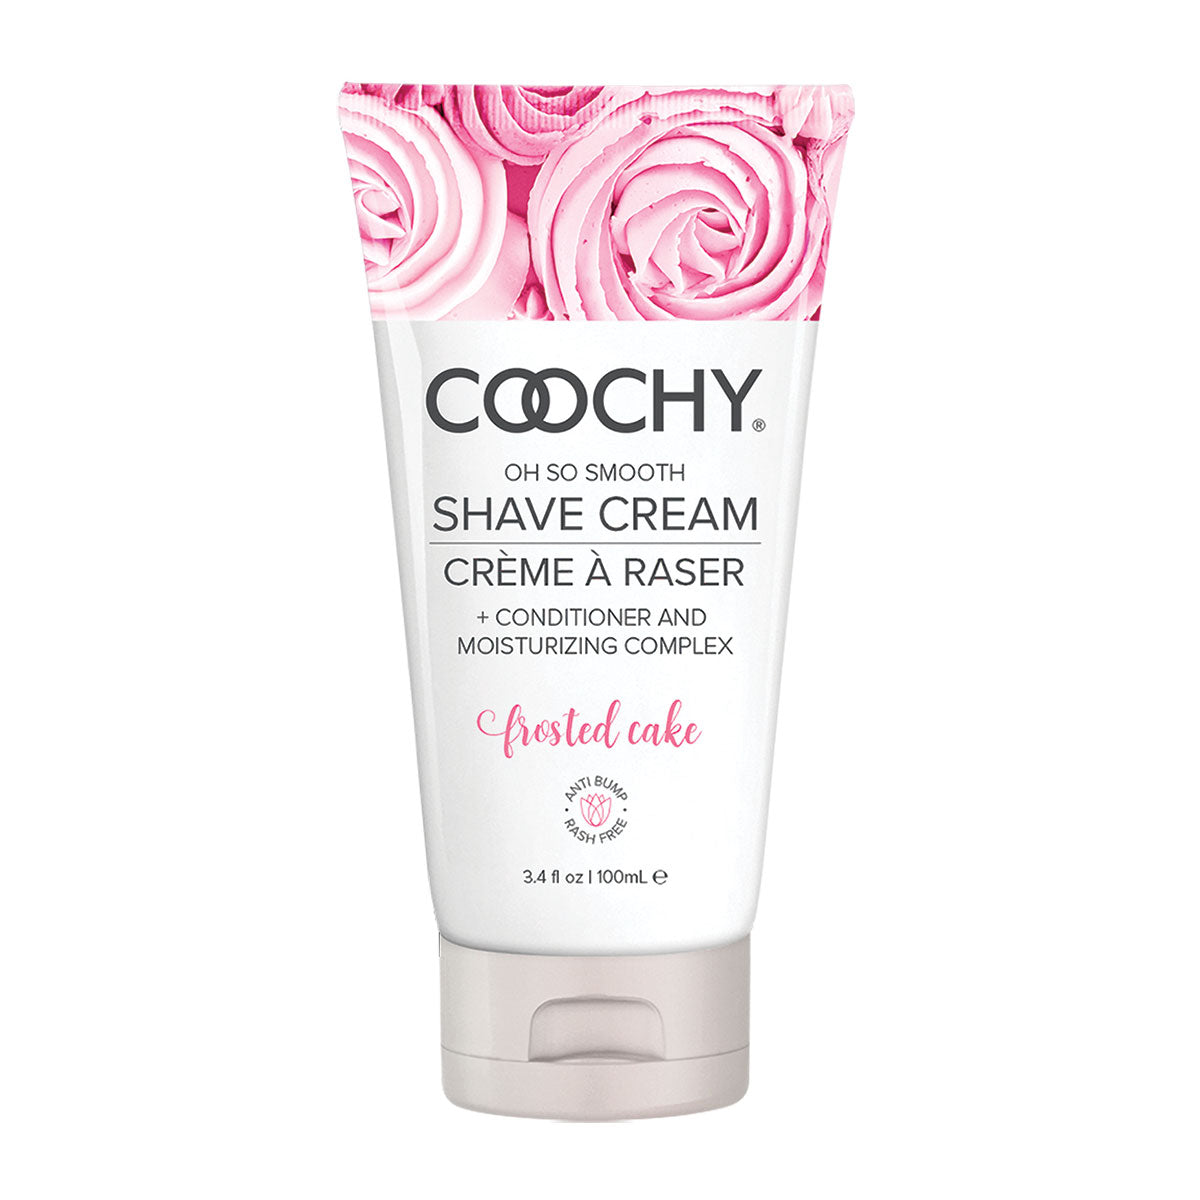 Coochy Shave Cream 3.4oz - Frosted Cake